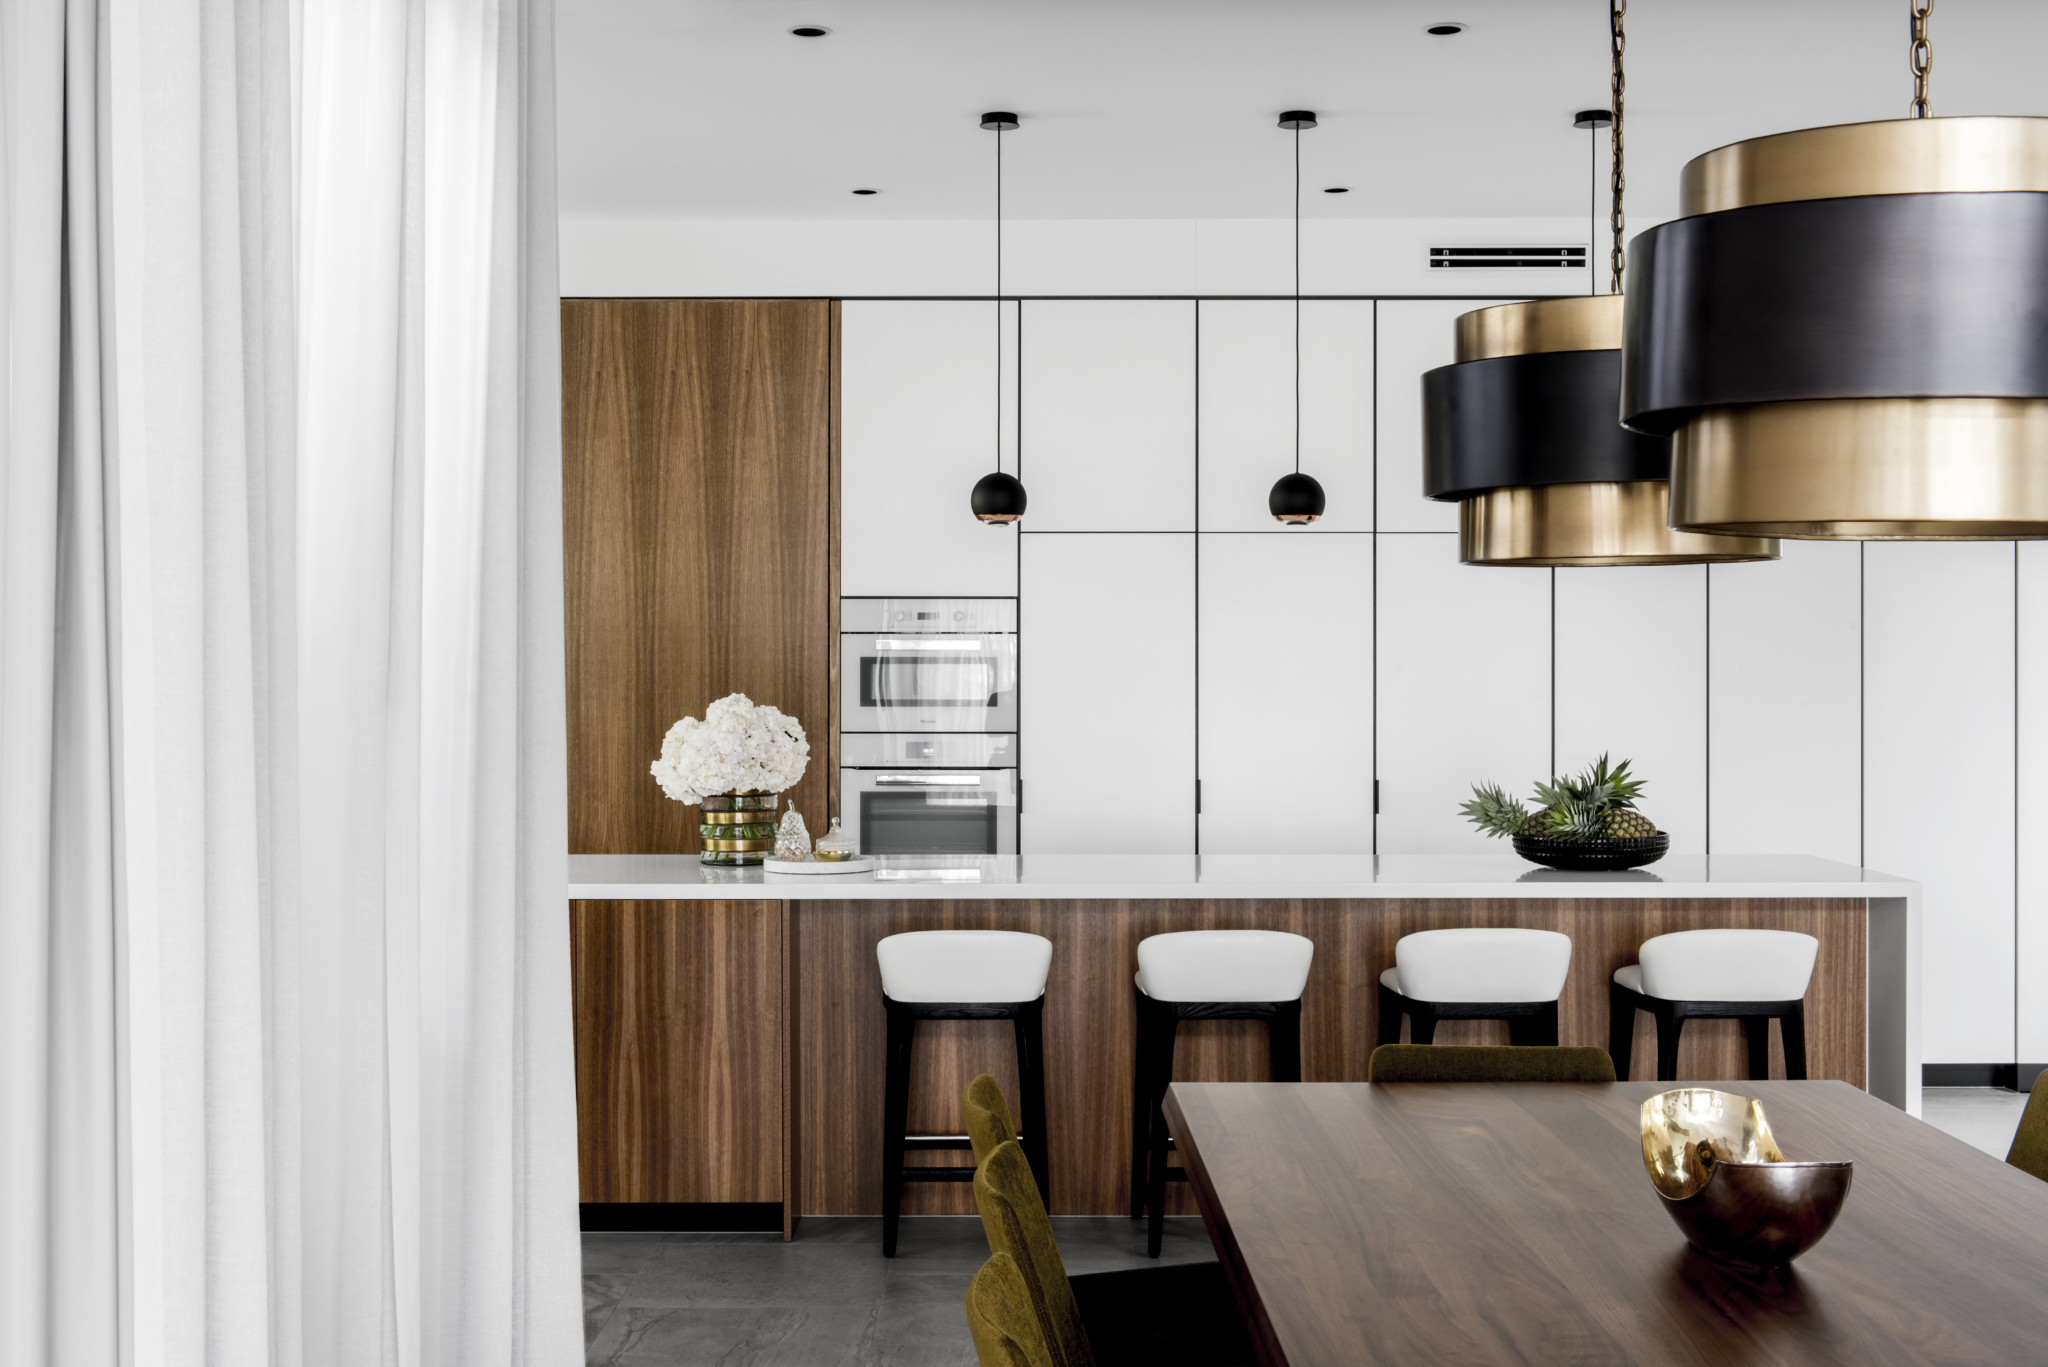 Brisbane Residential Interior kitchen area